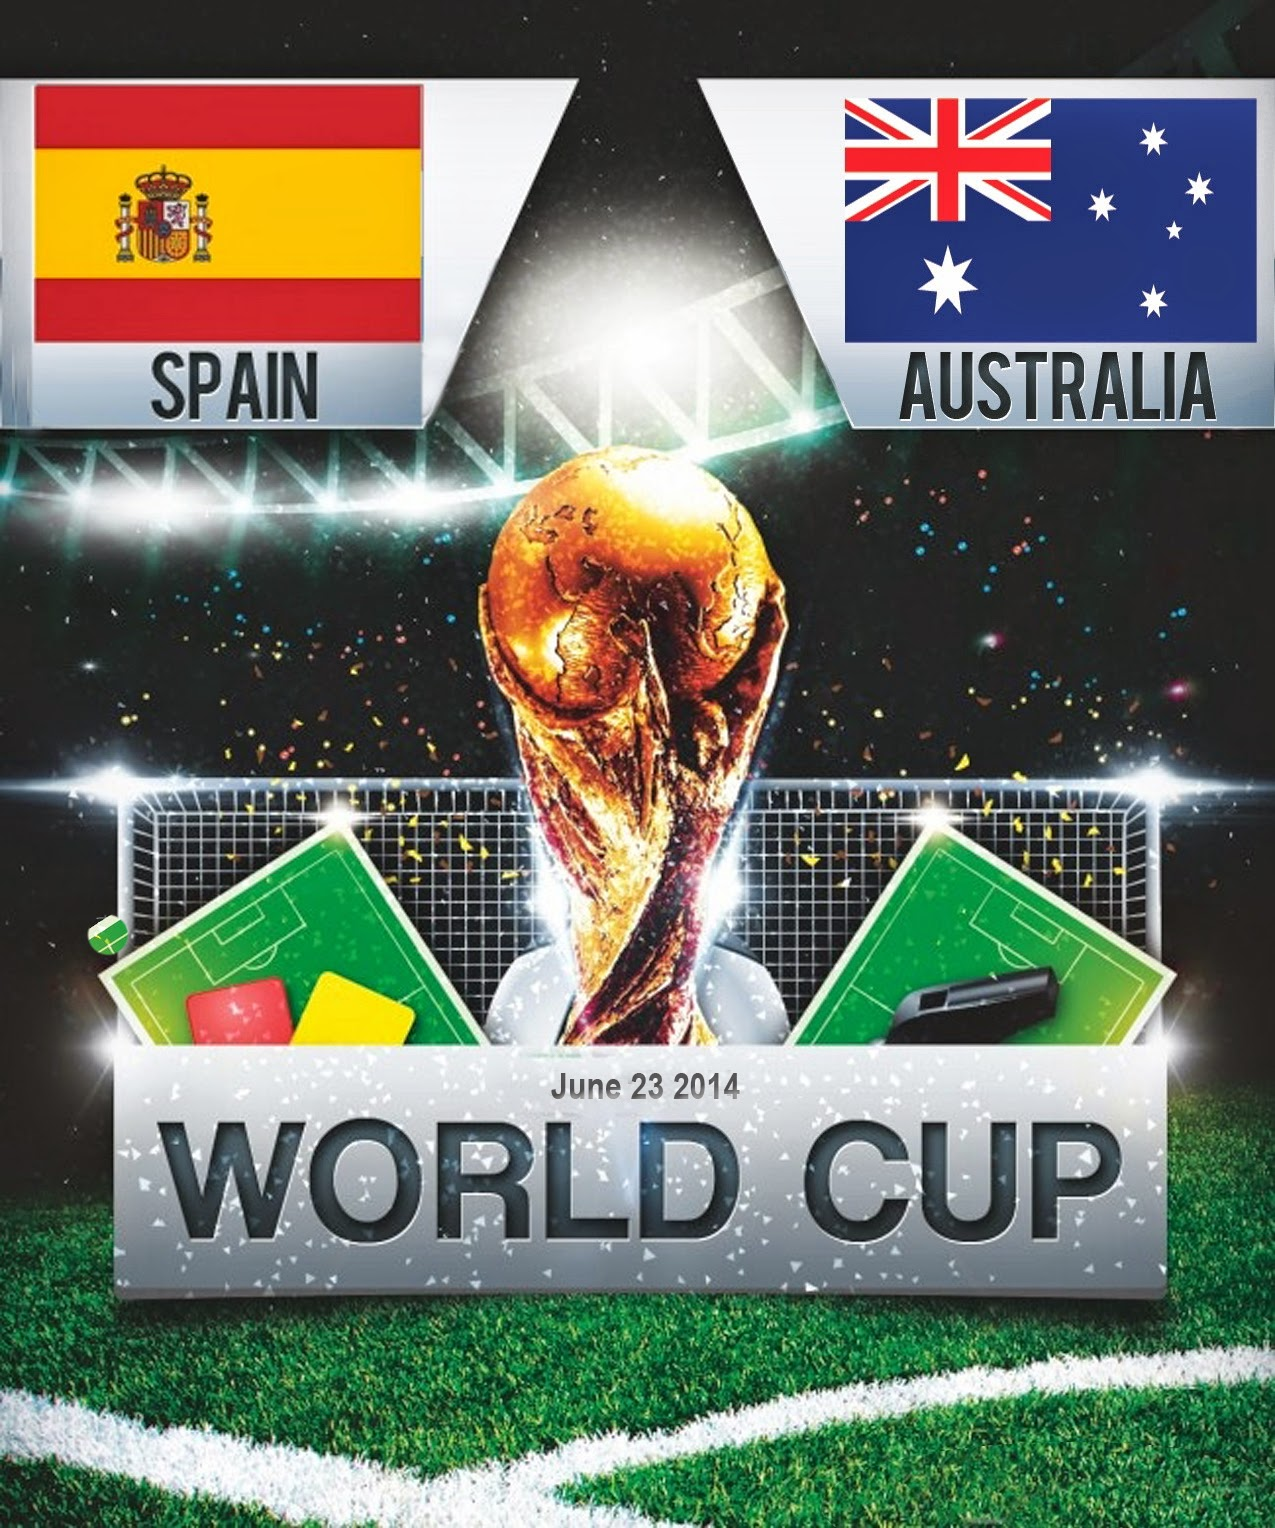 FIFA World Cup 2014 - Spain Vs Australia